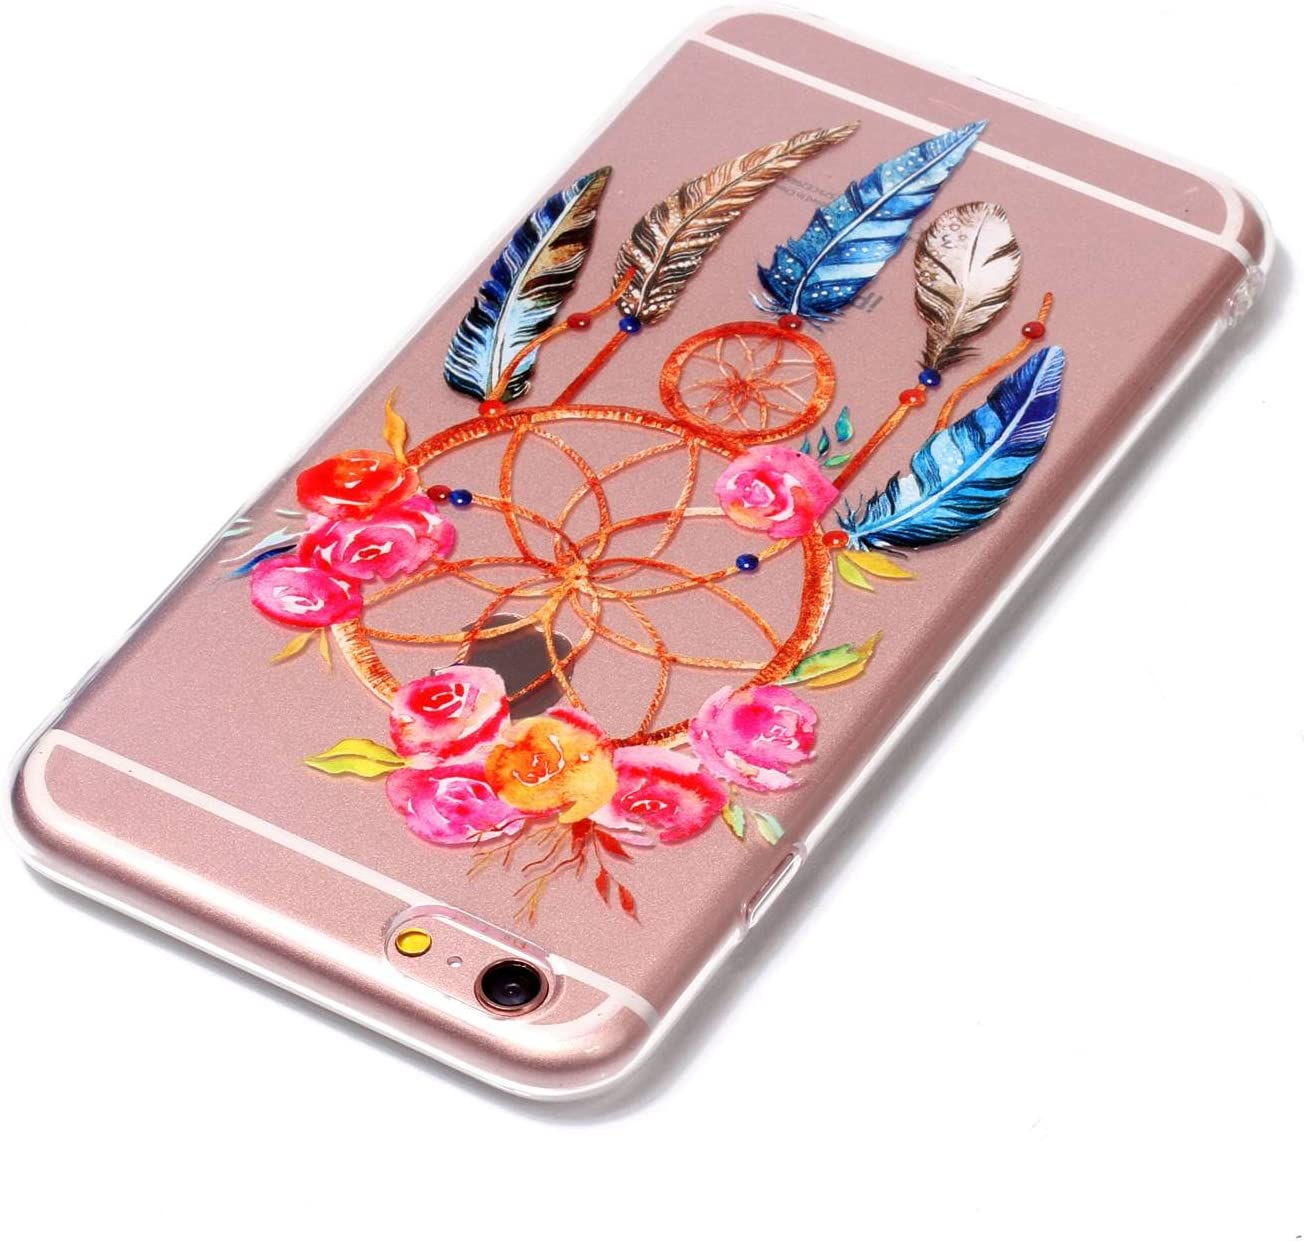 Slim Thin Peach blossom Fashional Soft Transparent Shock Absorption Scratch Resistant TPU Skin Silicone Full-body Protective for Apple iPhone 6 // 6S Plus iPhone 6 // 6S Plus Case